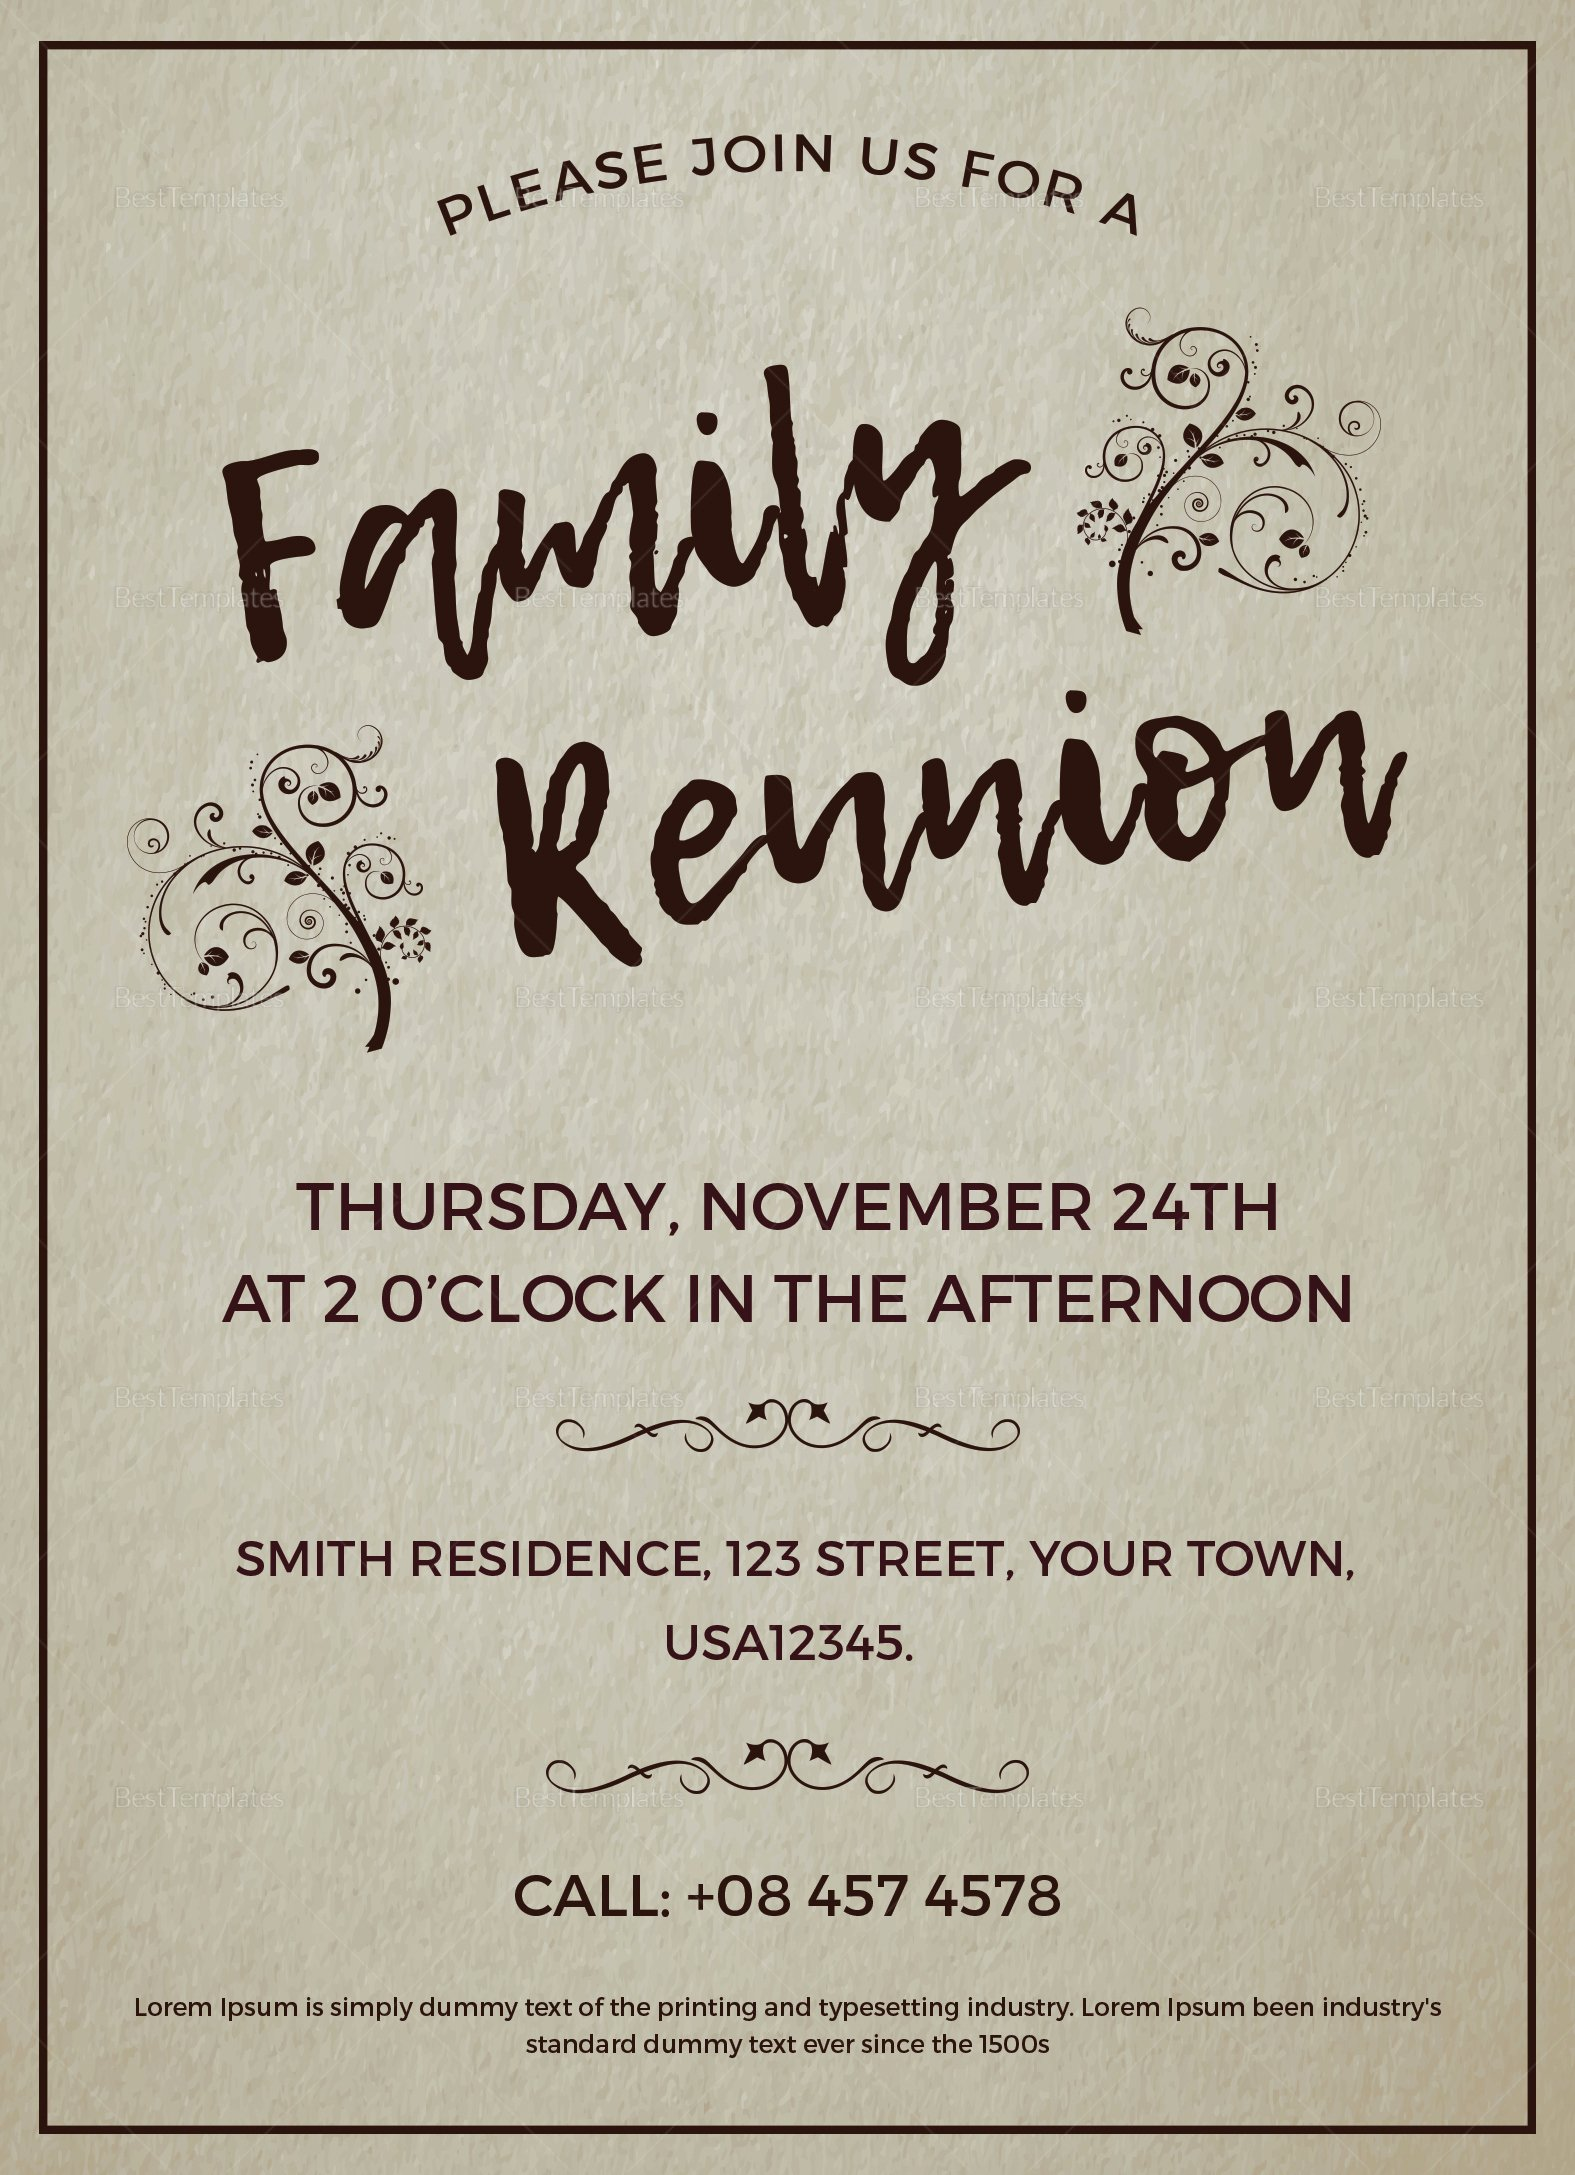 Family Reunion Invitation Design Template In Word Psd